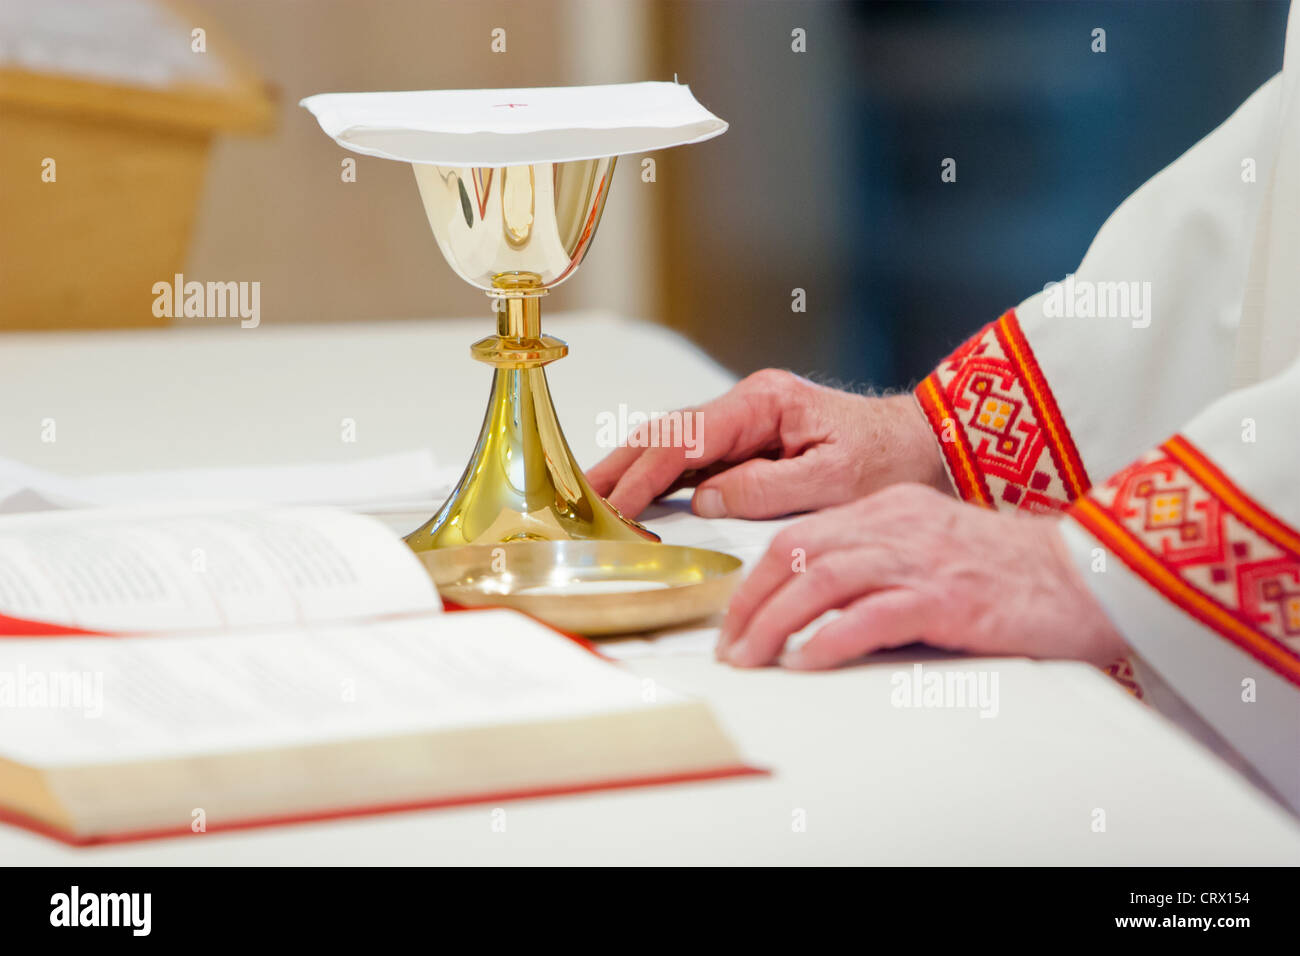 Catholic Mass and a priest holding a chalice during the religious ceremony. - Stock Image